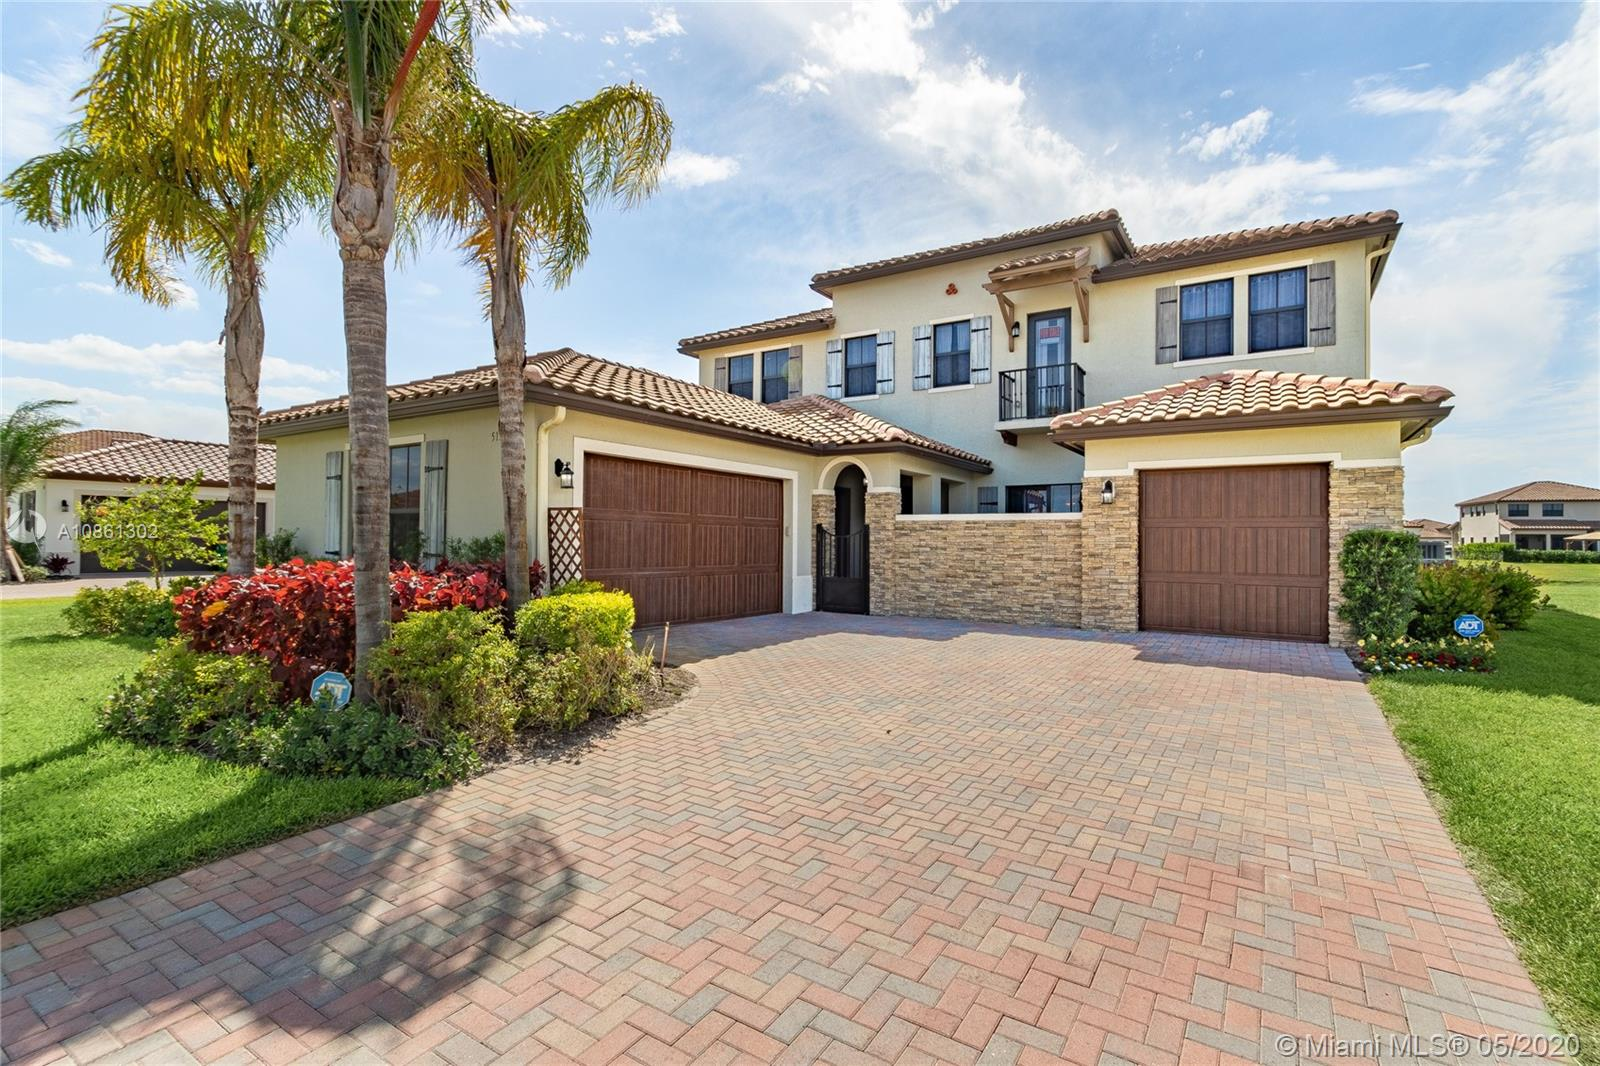 5135 Genoa, one of homes for sale in Ave Maria